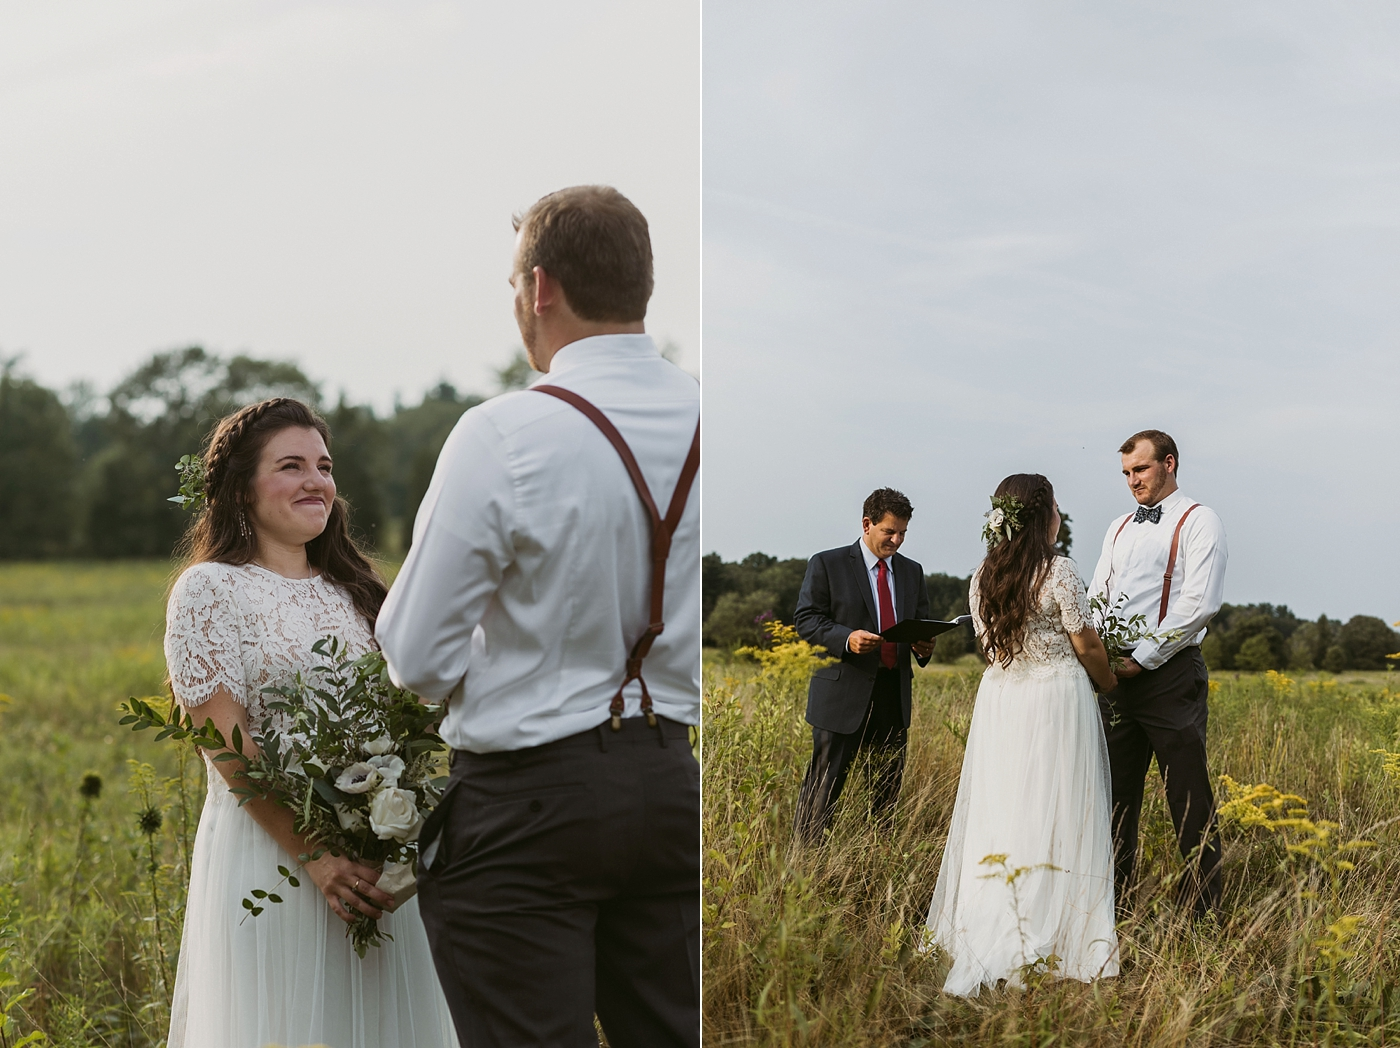 Meadow-Elopement-Ashley+Ben_MJPHOTO2018-104.jpg